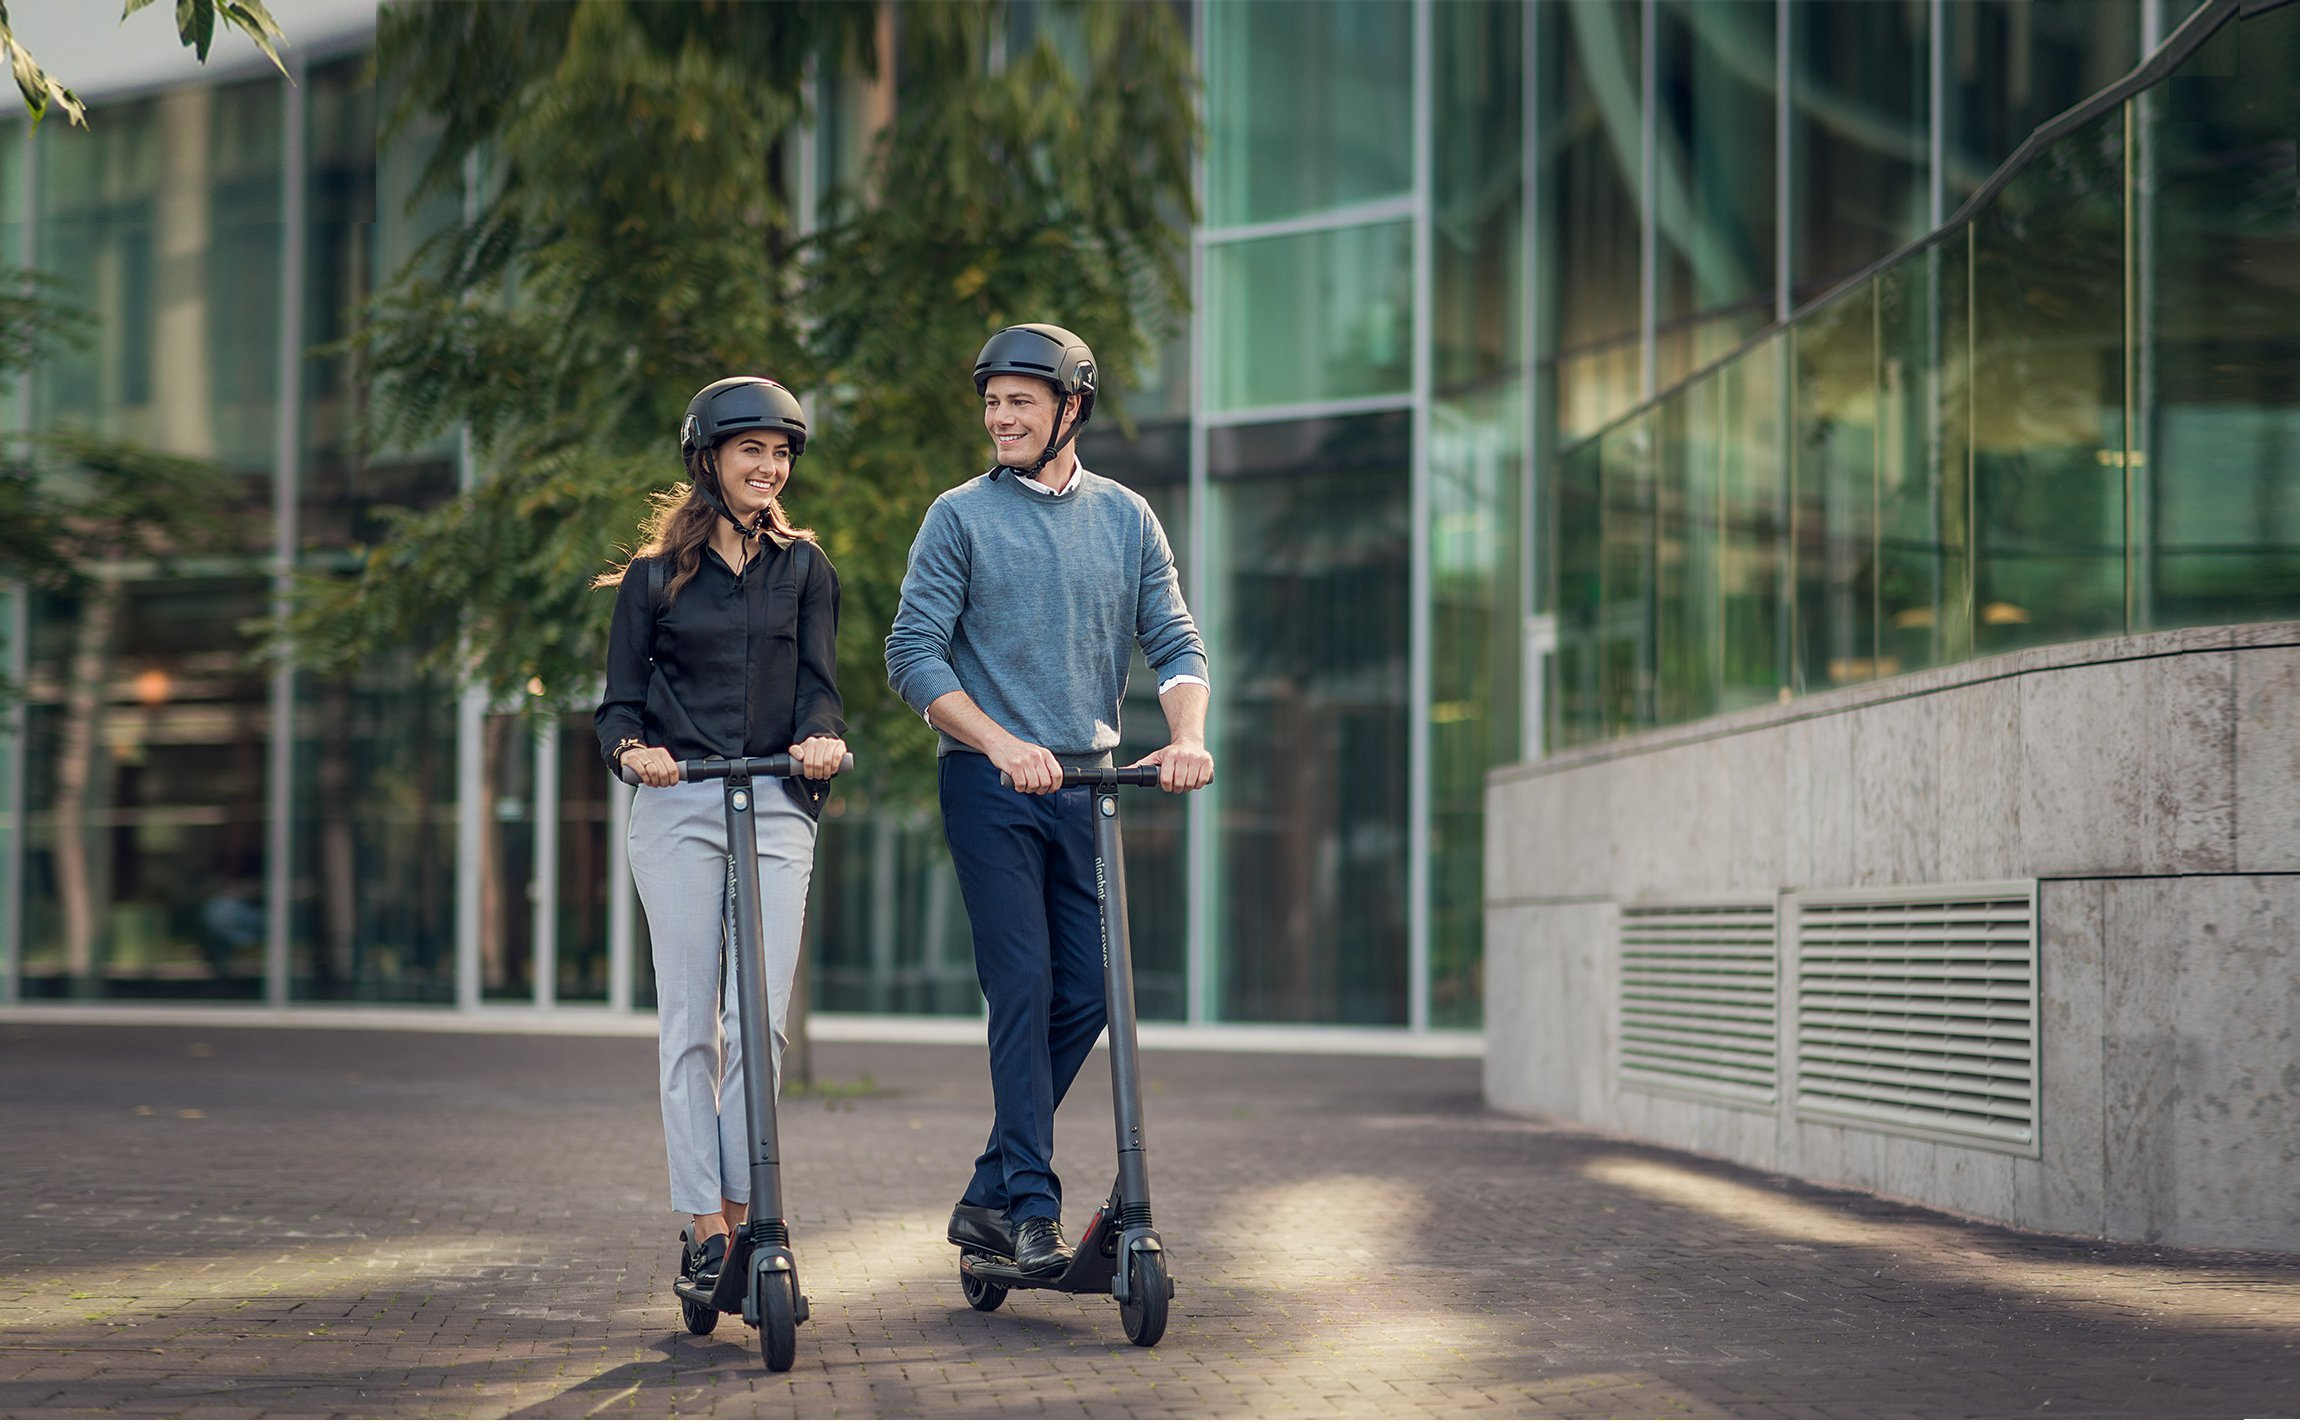 ninebot-by-segway-kickscooter-es2-review